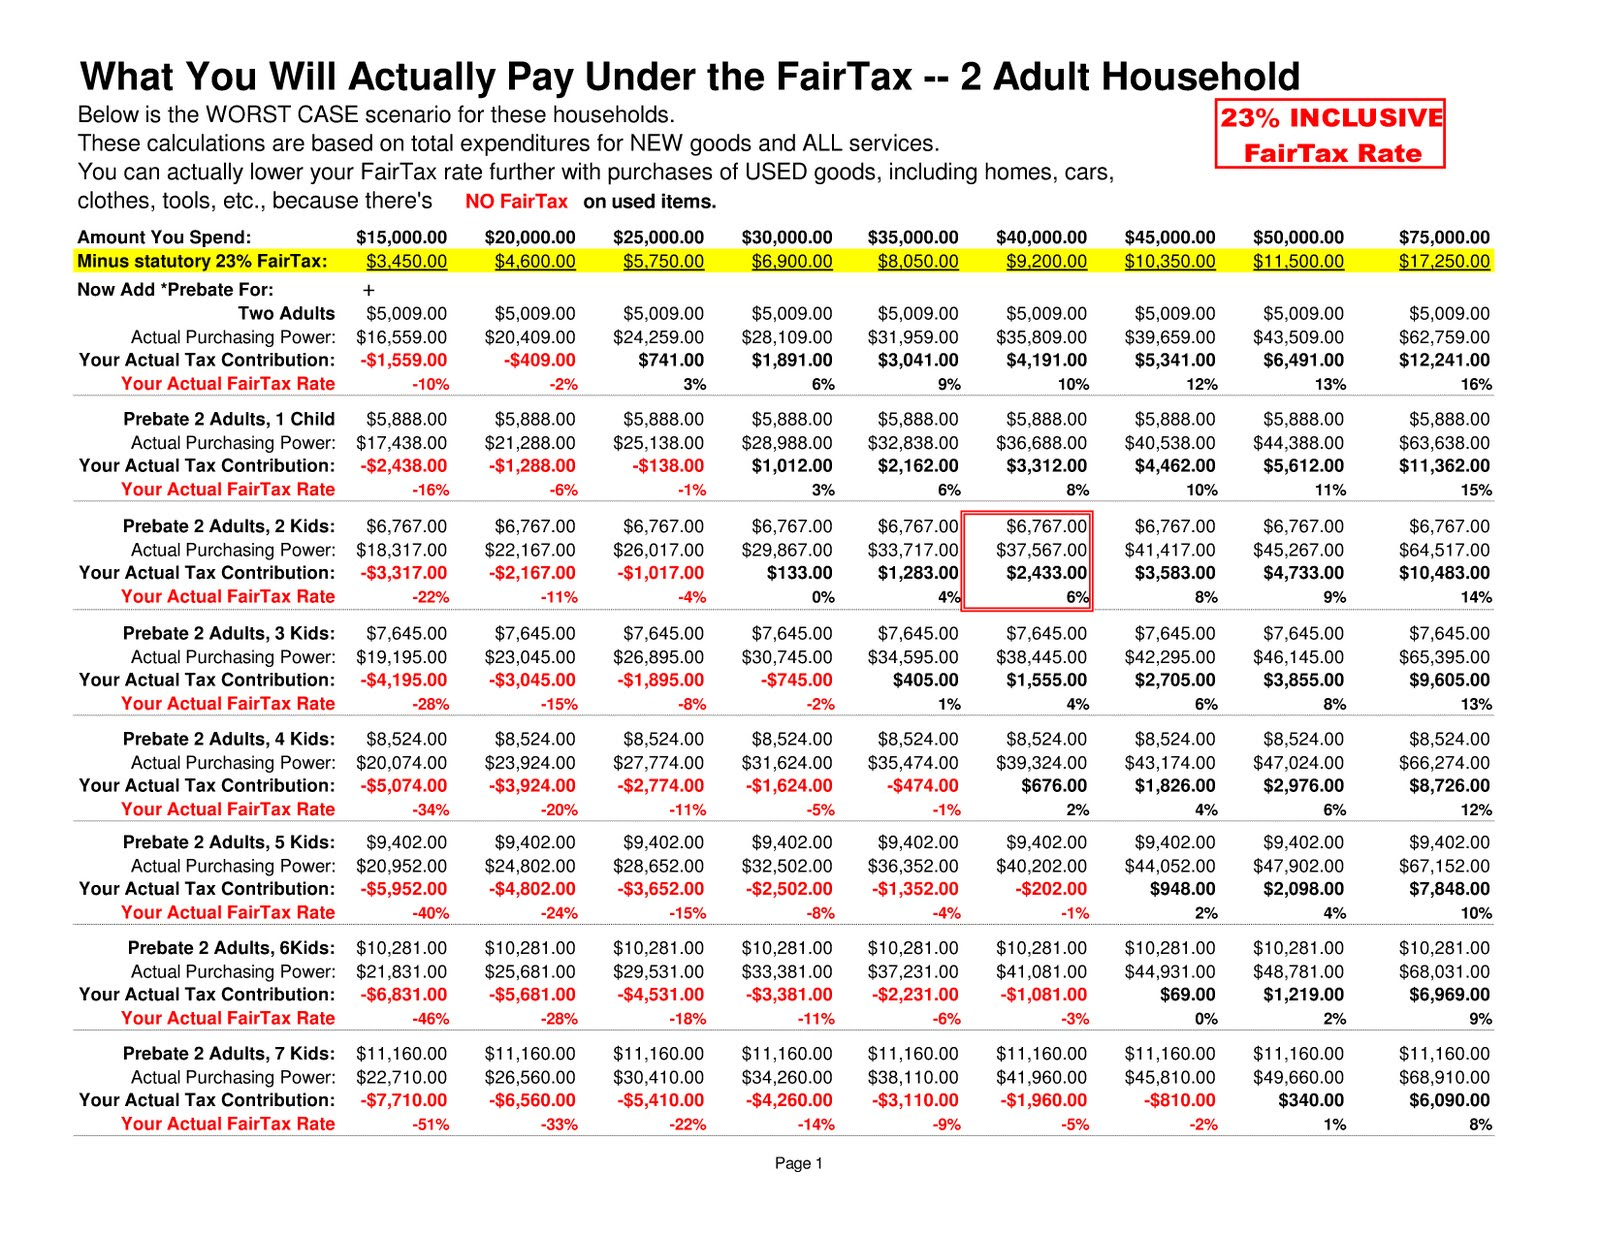 Table 2. Actual 23% INCLUSIVE FairTax rates for 2 Adult Households